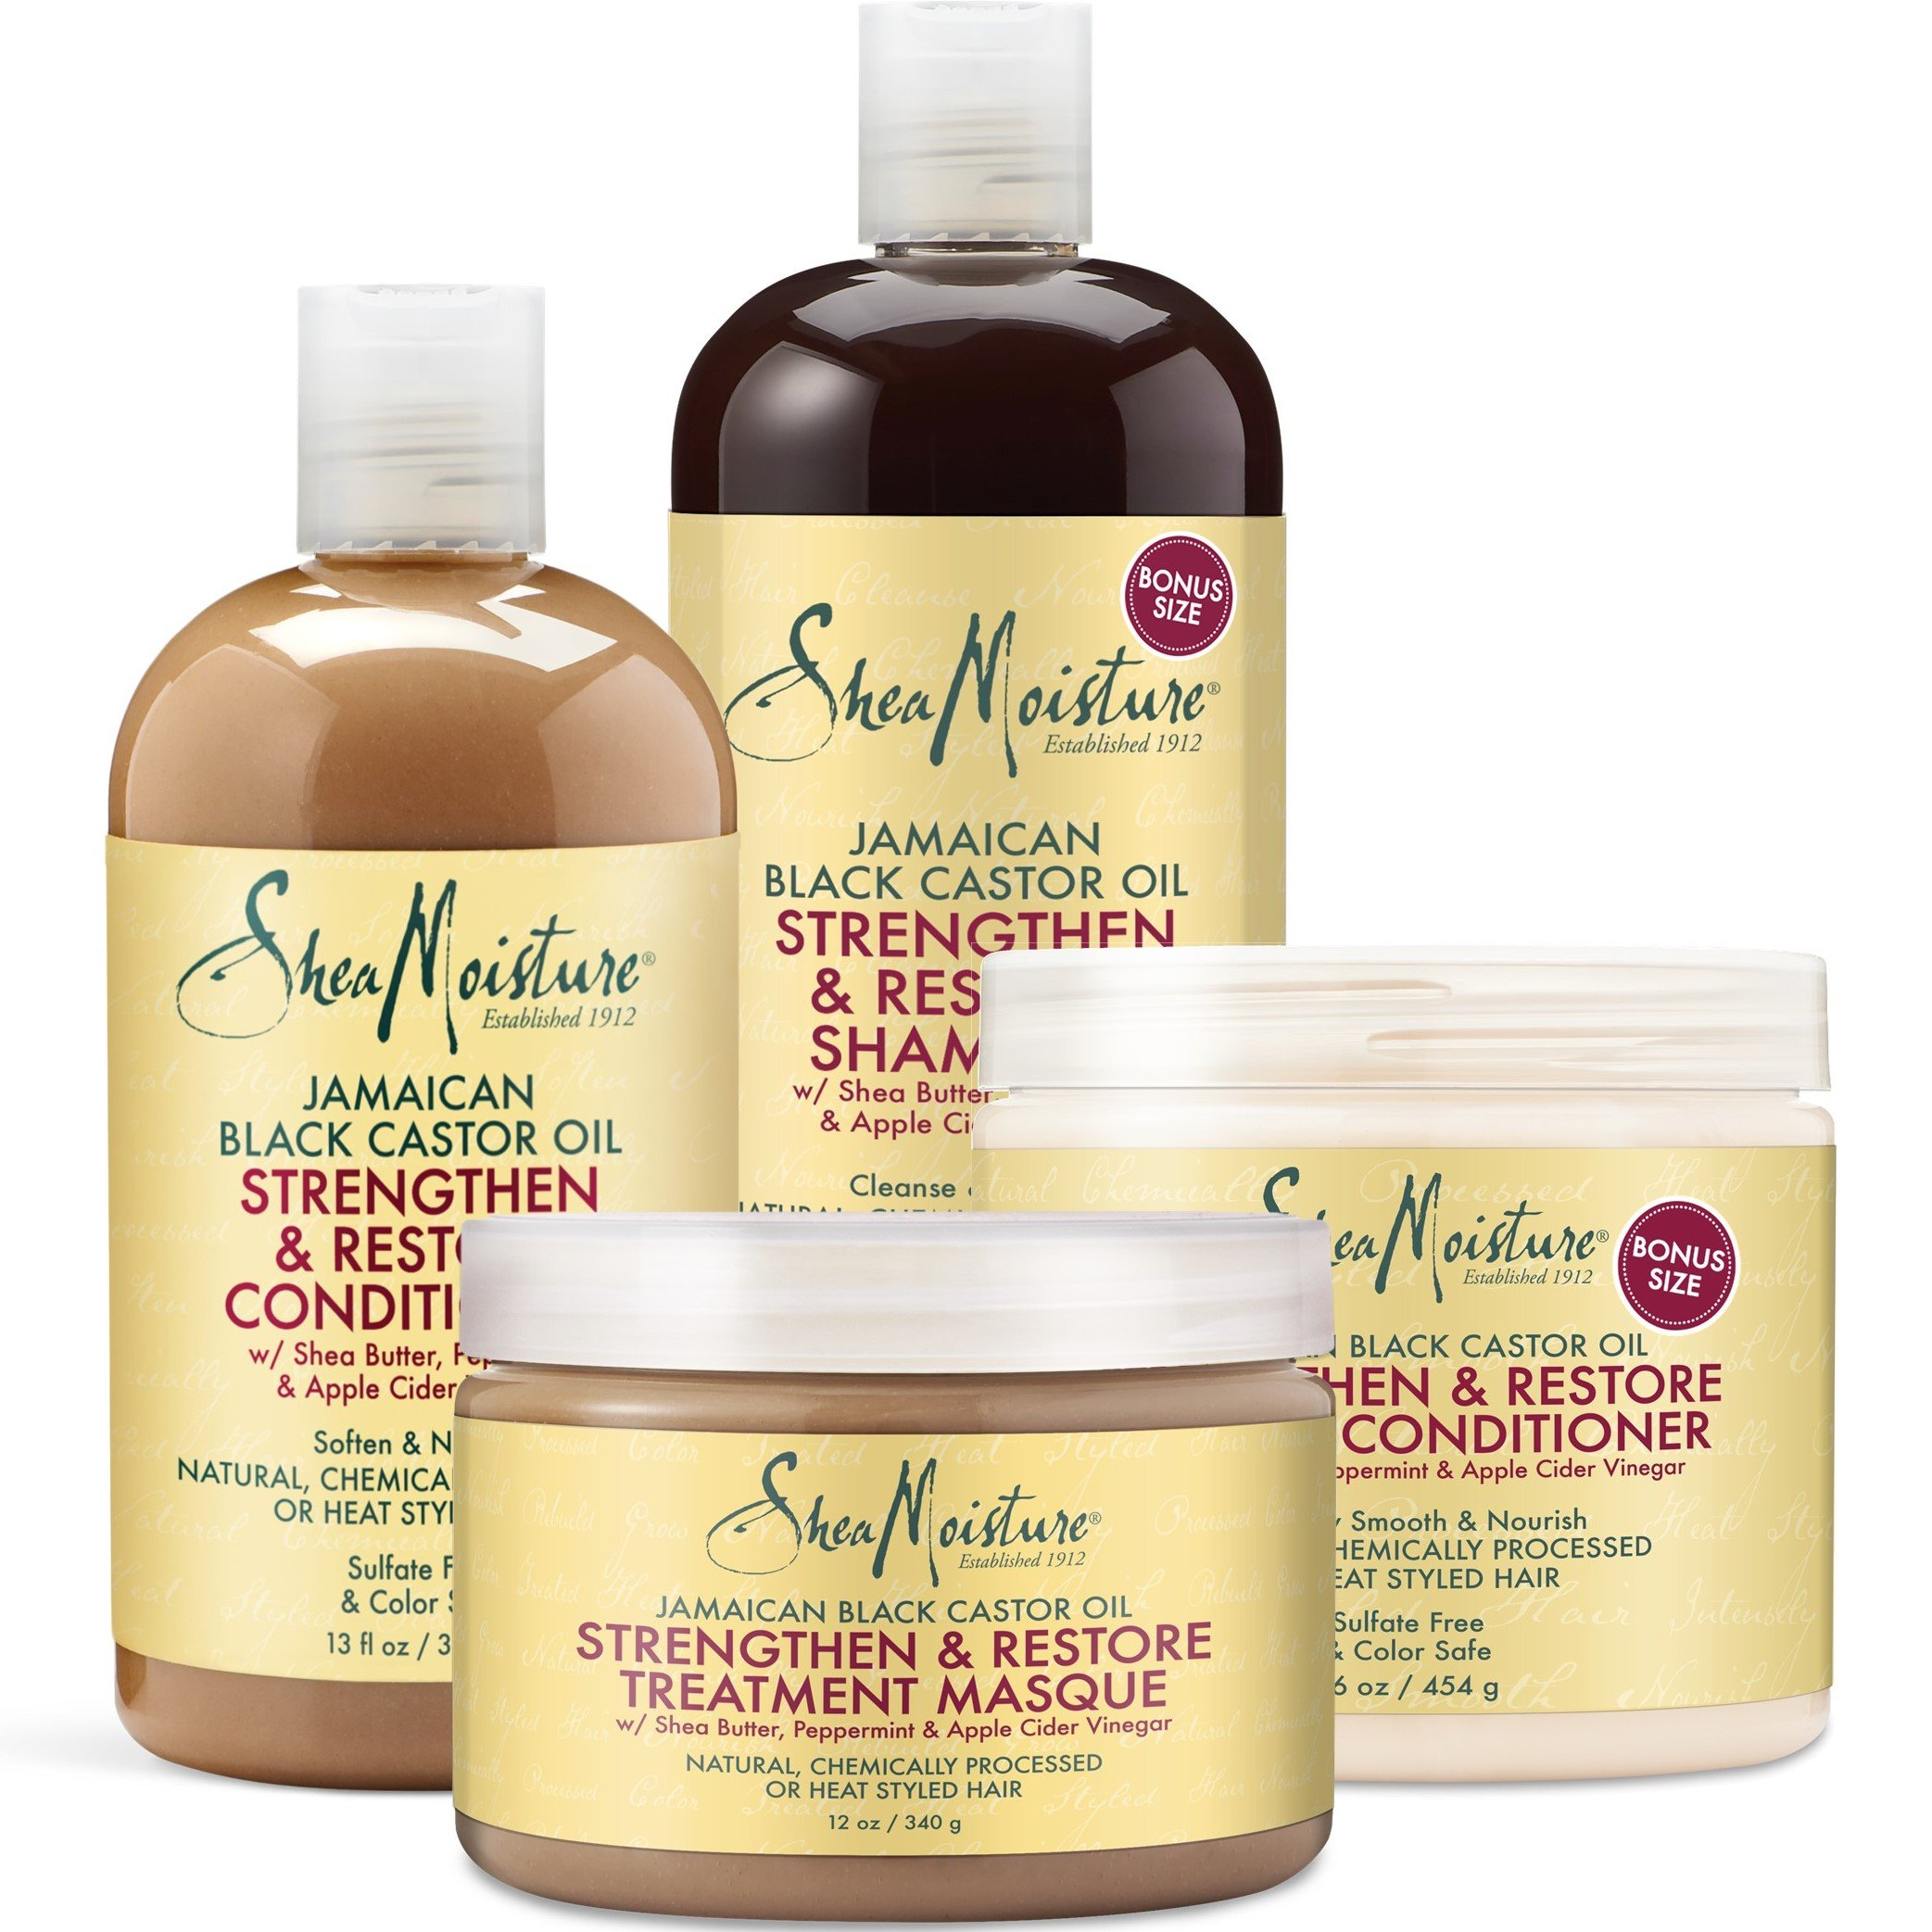 Shea Moisture Strengthen Grow & Restore Combo Bundle, Includes - 16.3 Ounce Jamaican Black Castor Oil Shampoo | 16 Ounce Leave-In Conditioner | 13 Ounce Conditioner | 12 Ounce Treatment Masque by Shea Moisture